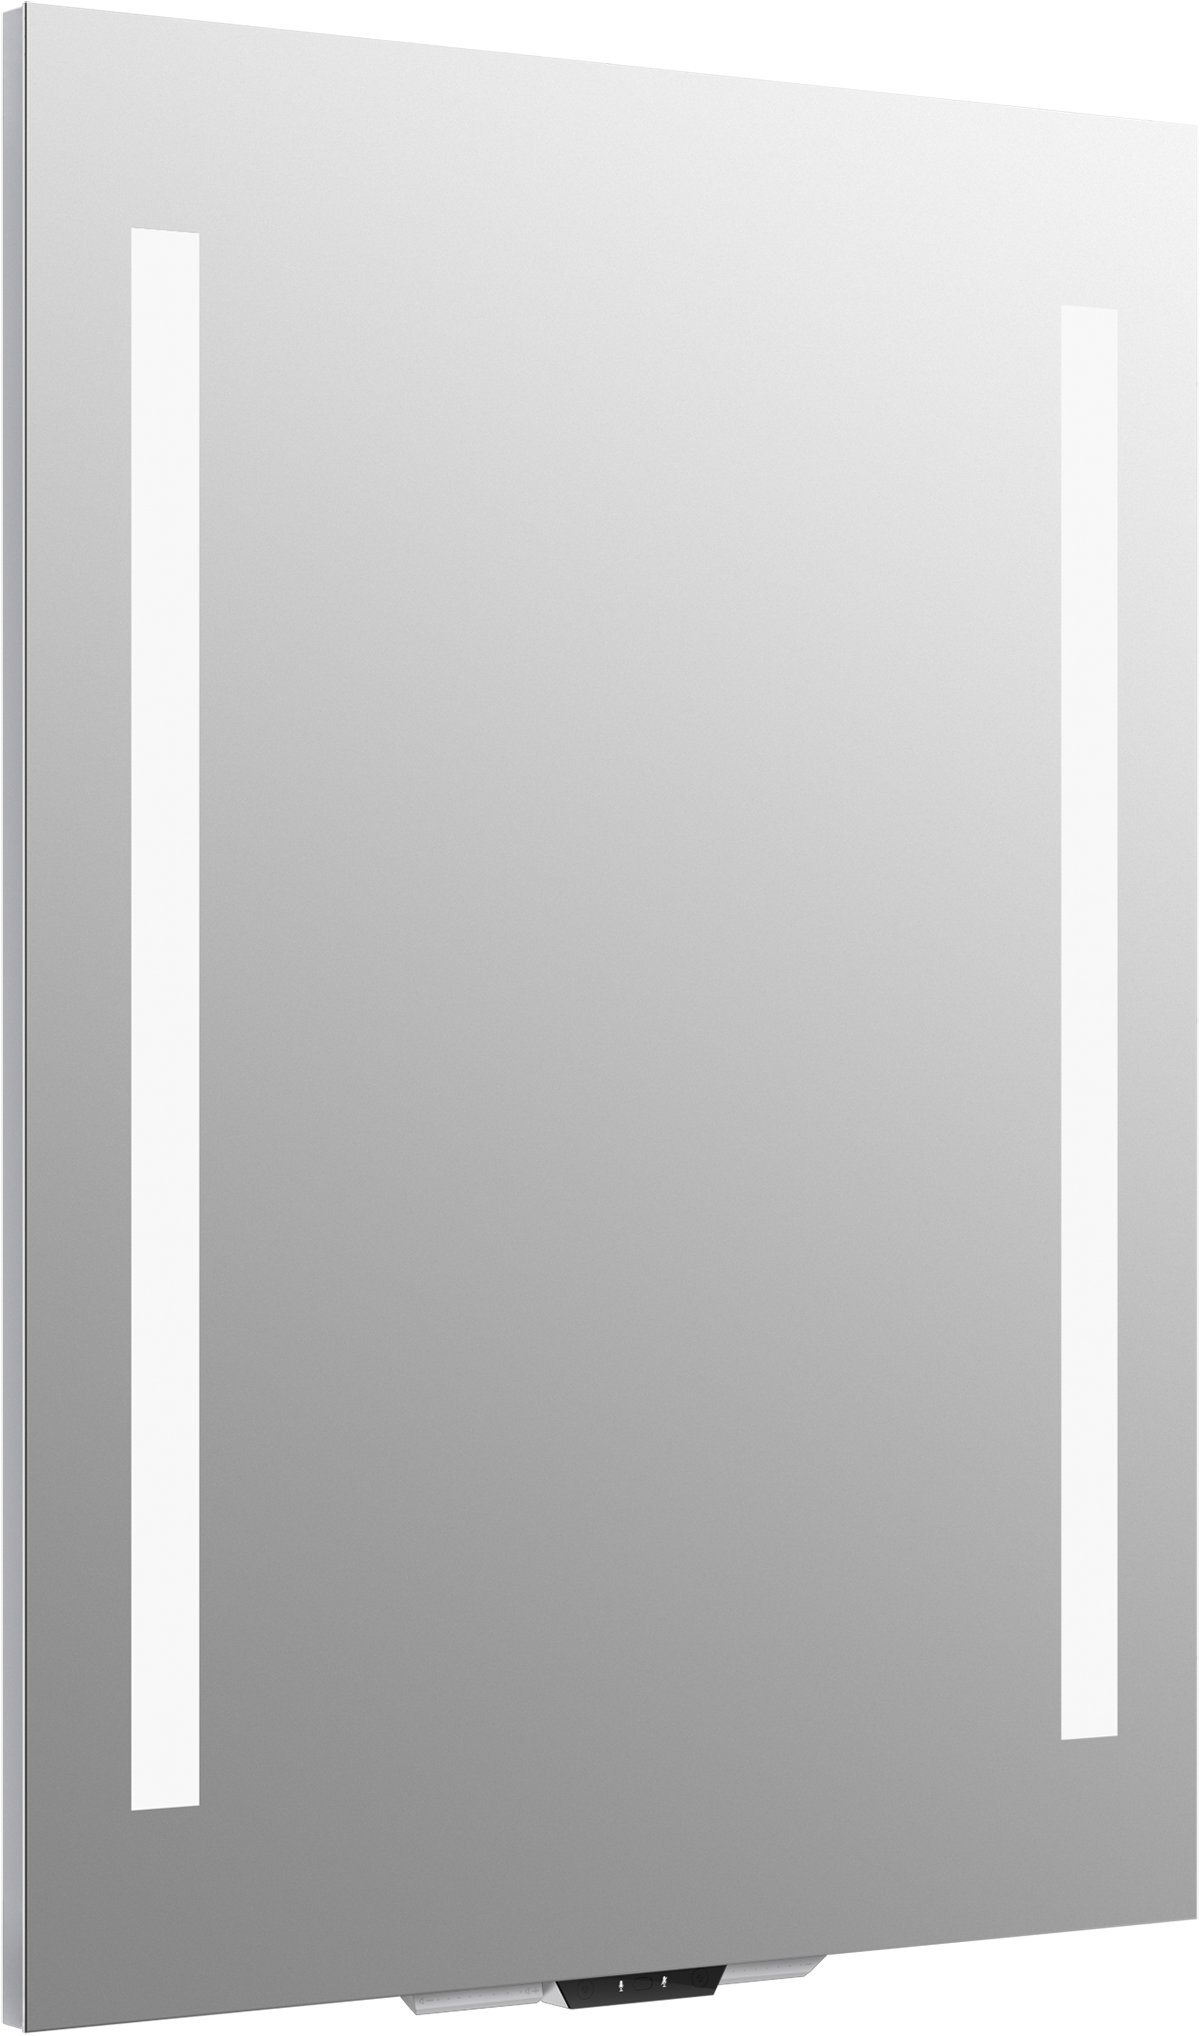 KOHLER 99571-VLAN-NA Verdera Voice 24 in. x 33 in. Lighted Mirror- Works with Alexa